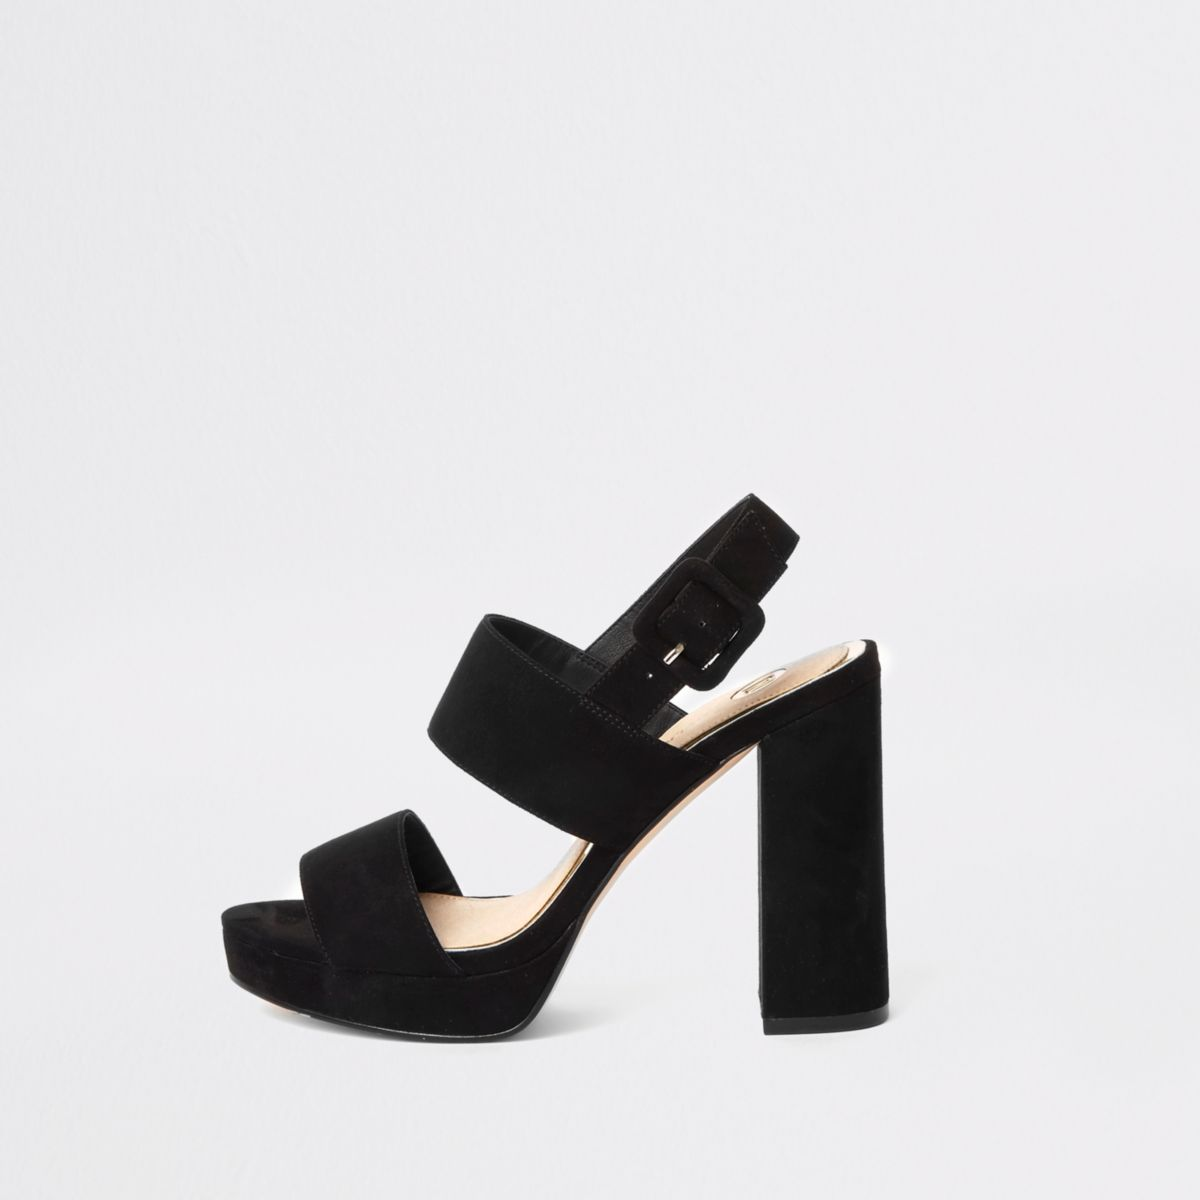 Black buckle strap platform heel sandals